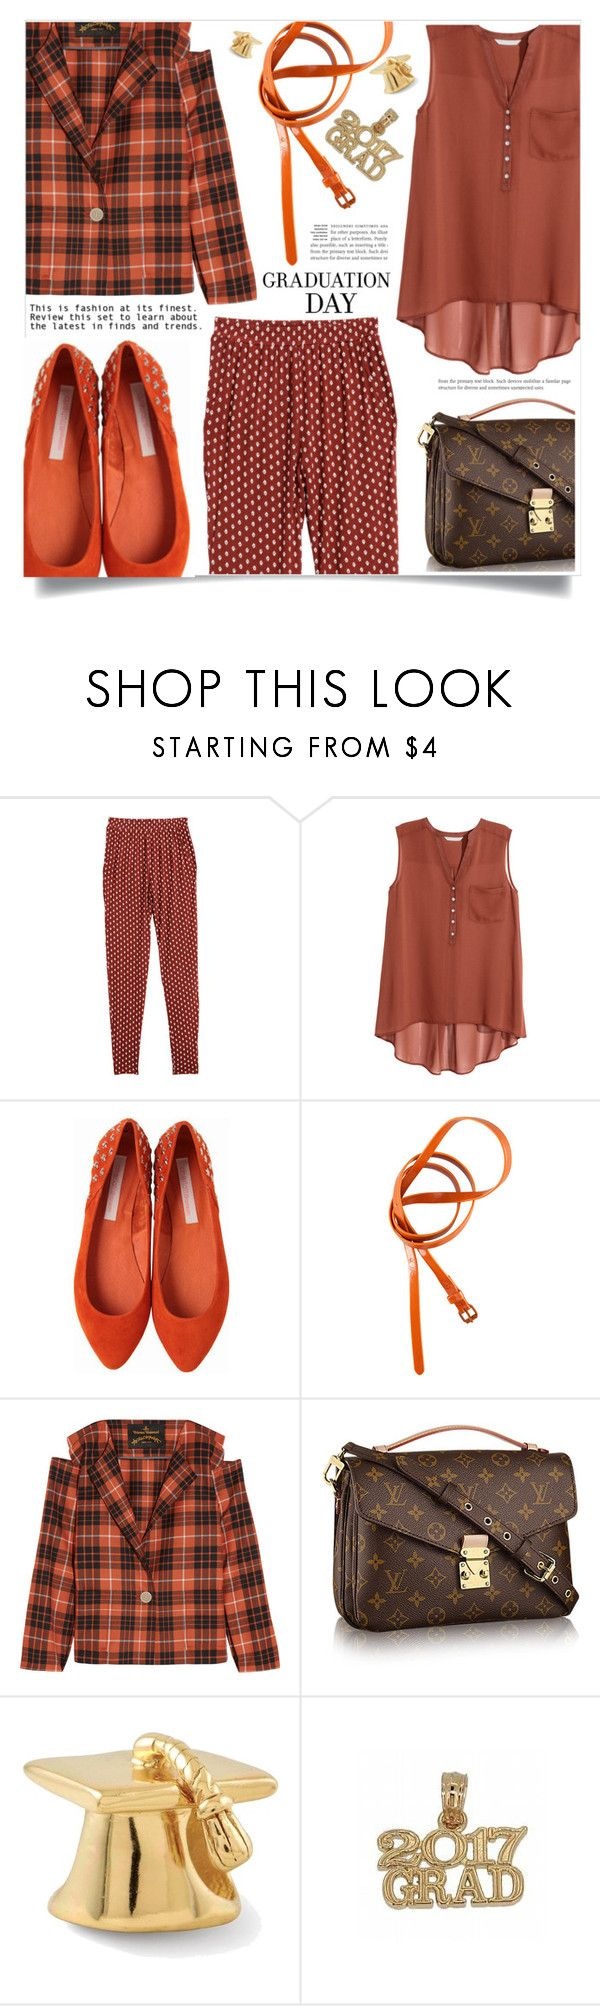 """Congrats, Grad: Graduation Day Style"" by dolly-valkyrie ❤ liked on Polyvore featuring H&M, Charlotte Ronson, Vivienne Westwood Anglomania and Graduation"